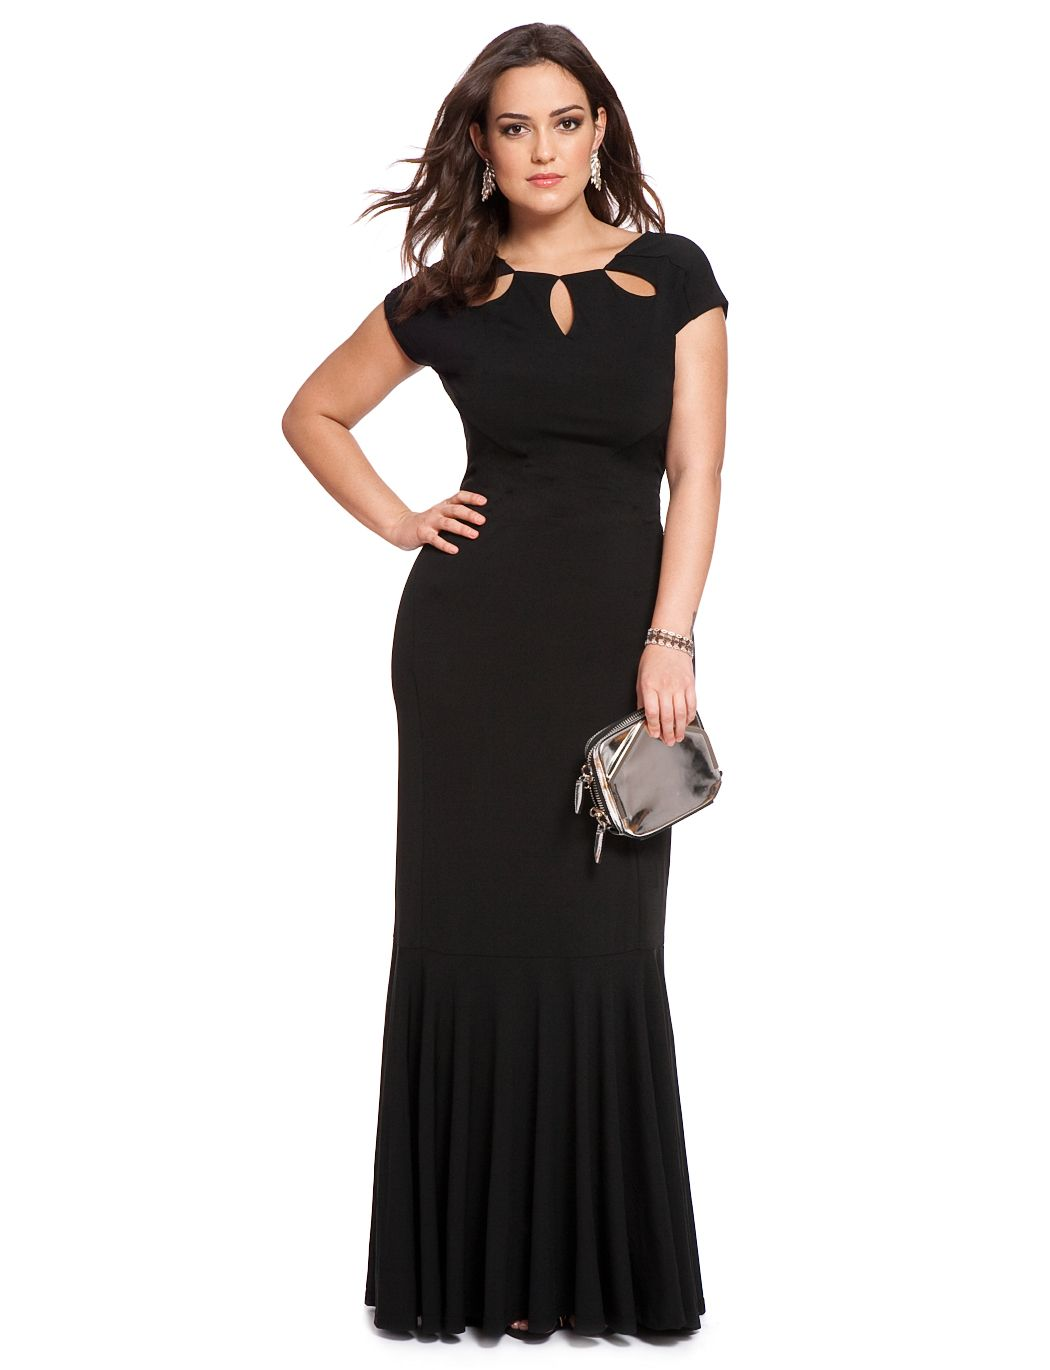 Studio petal neckline gown plus size dresses sexy and gowns